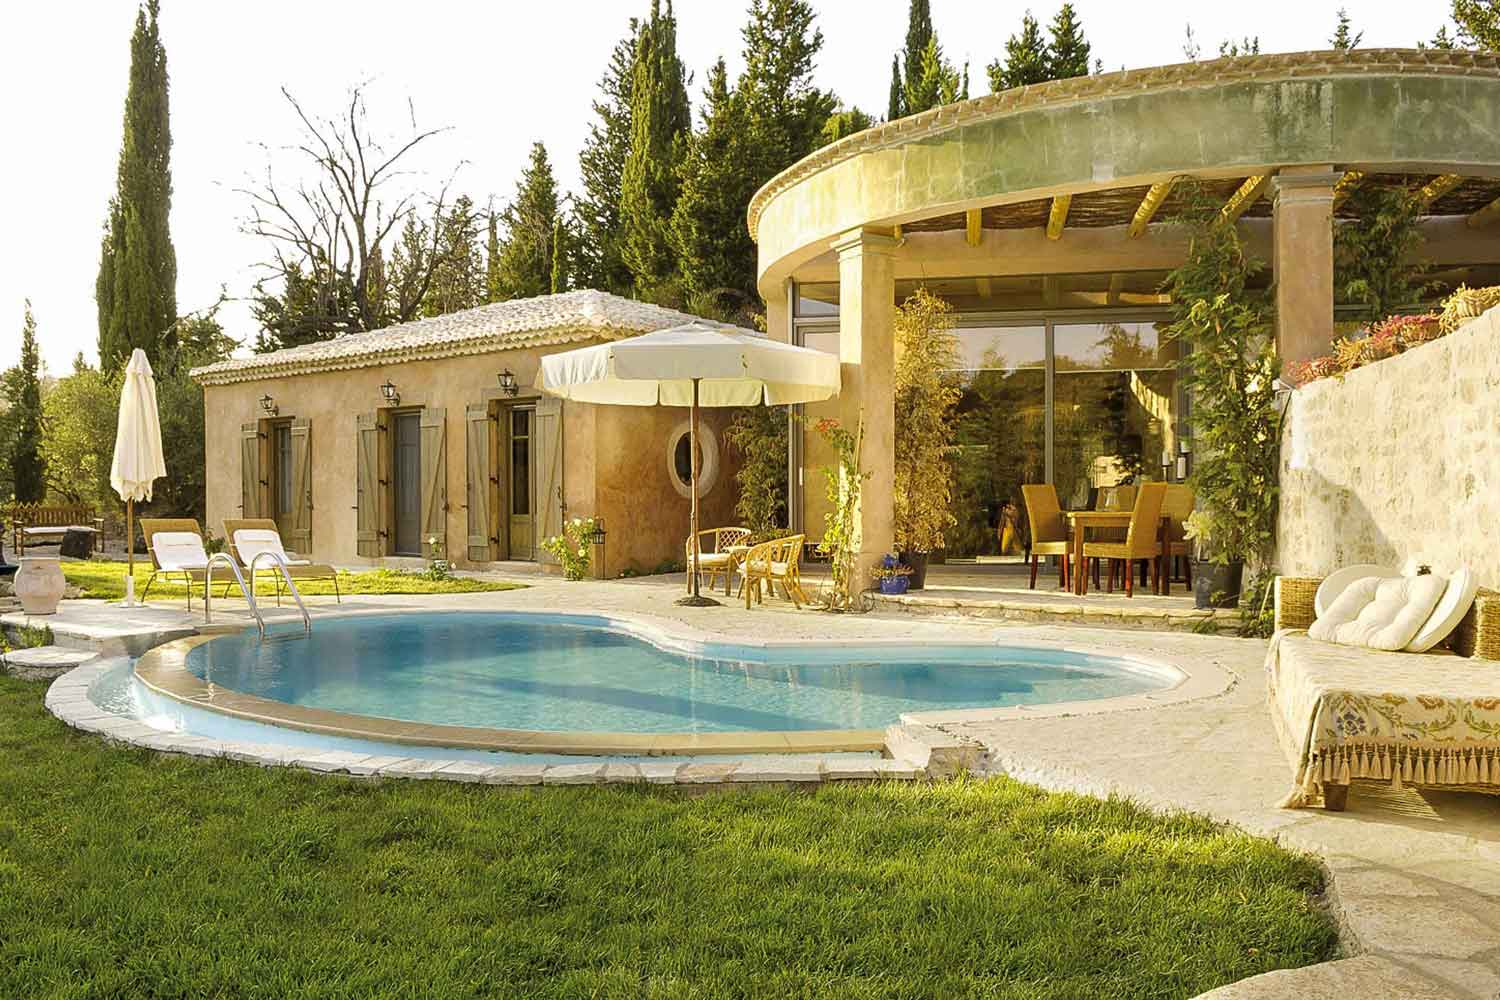 private pool villa for families, lovely pool garden